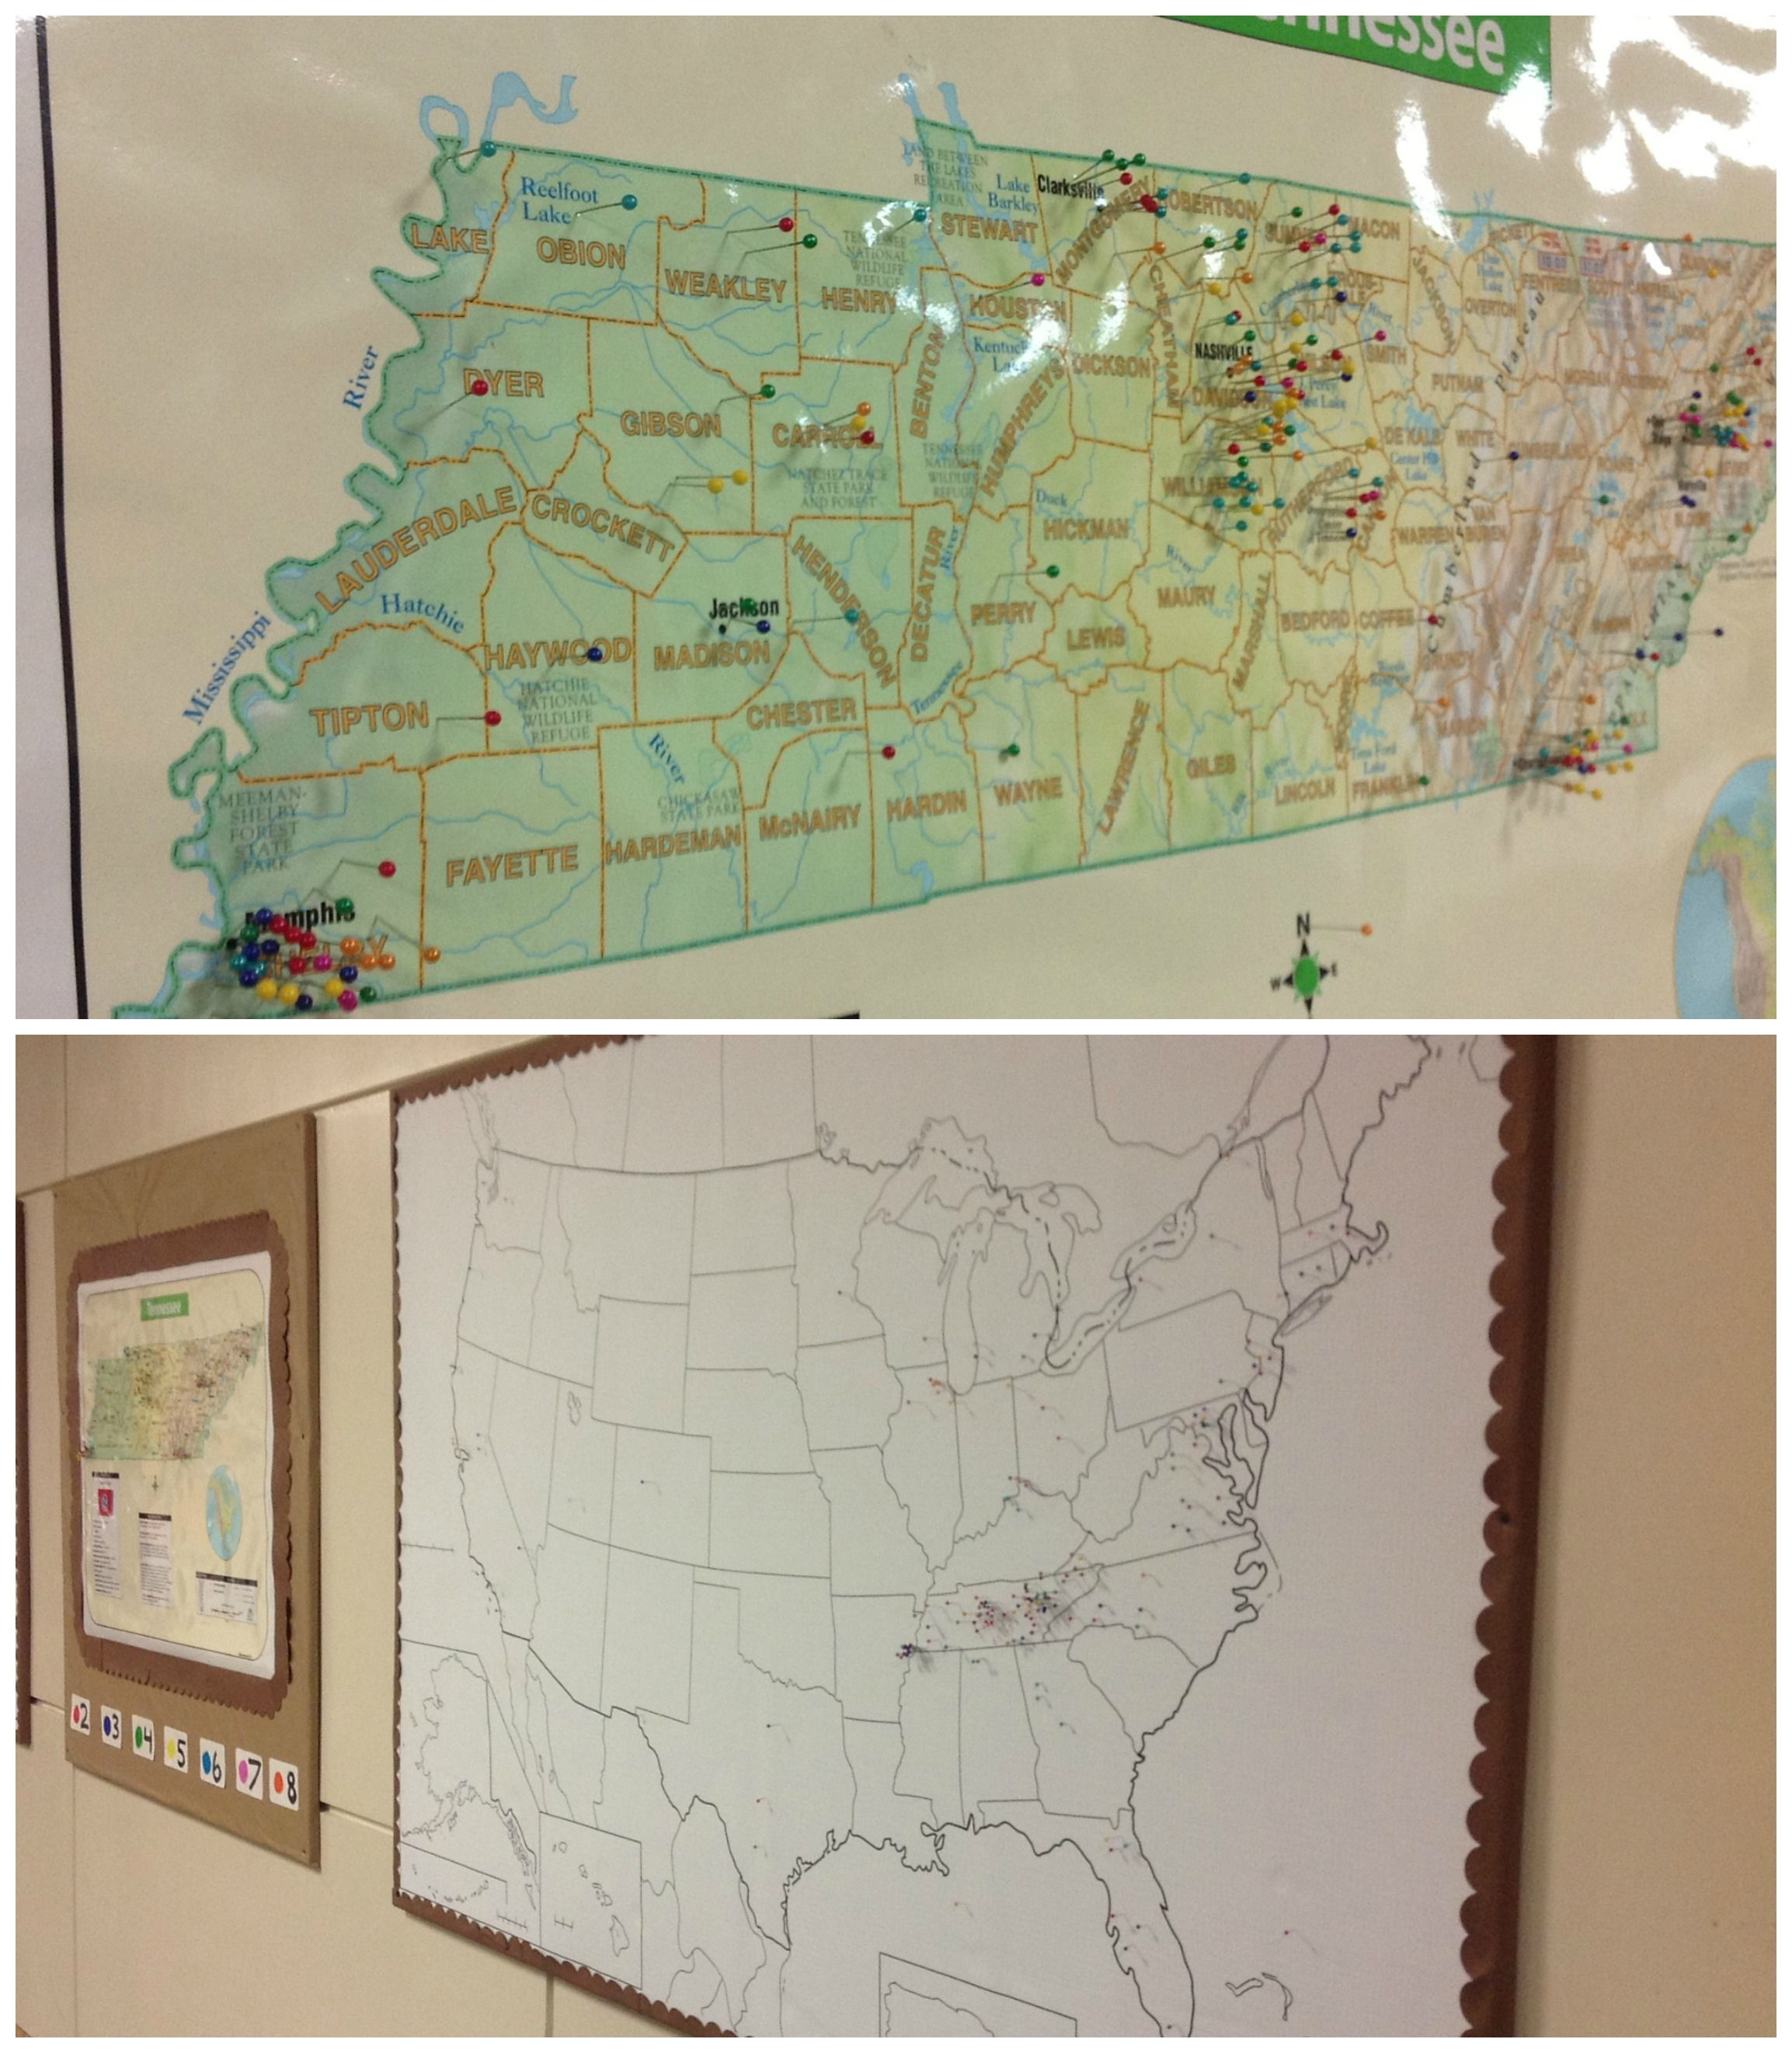 where are you from have residents place pins in maps of your home